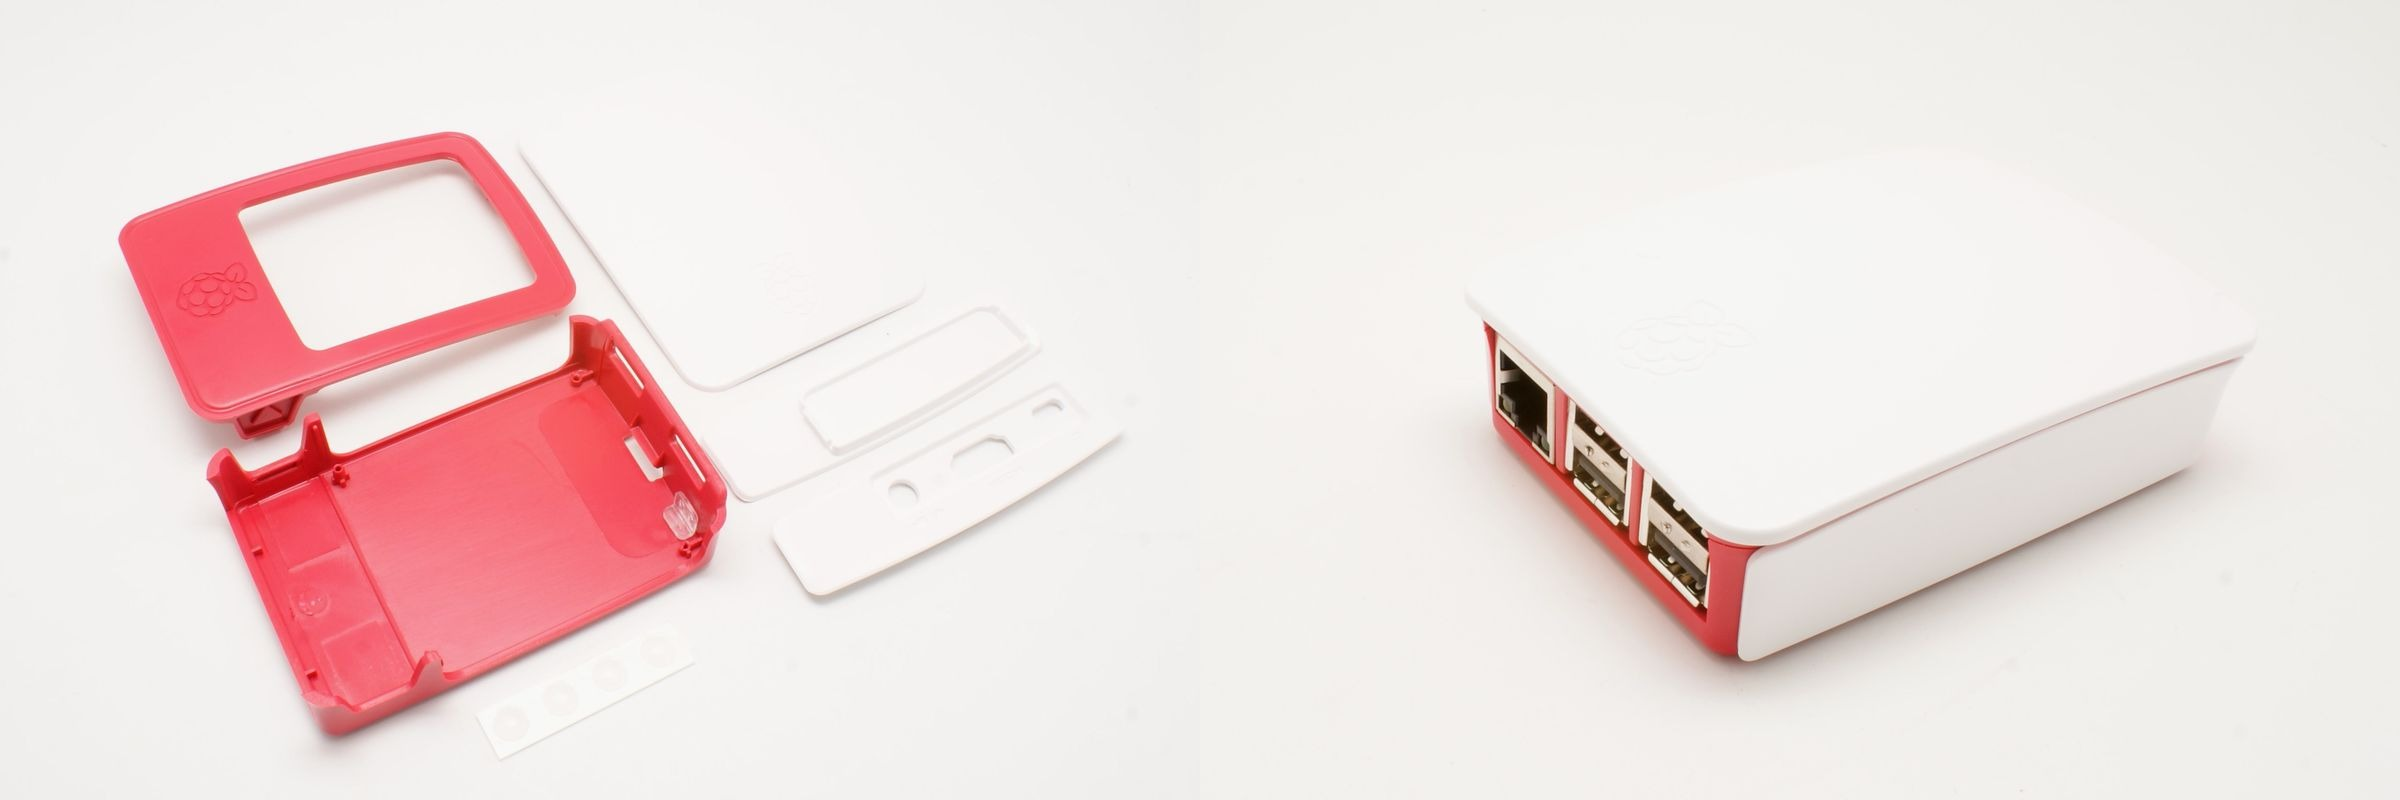 Raspberry-Pi-2-Red-White-Case